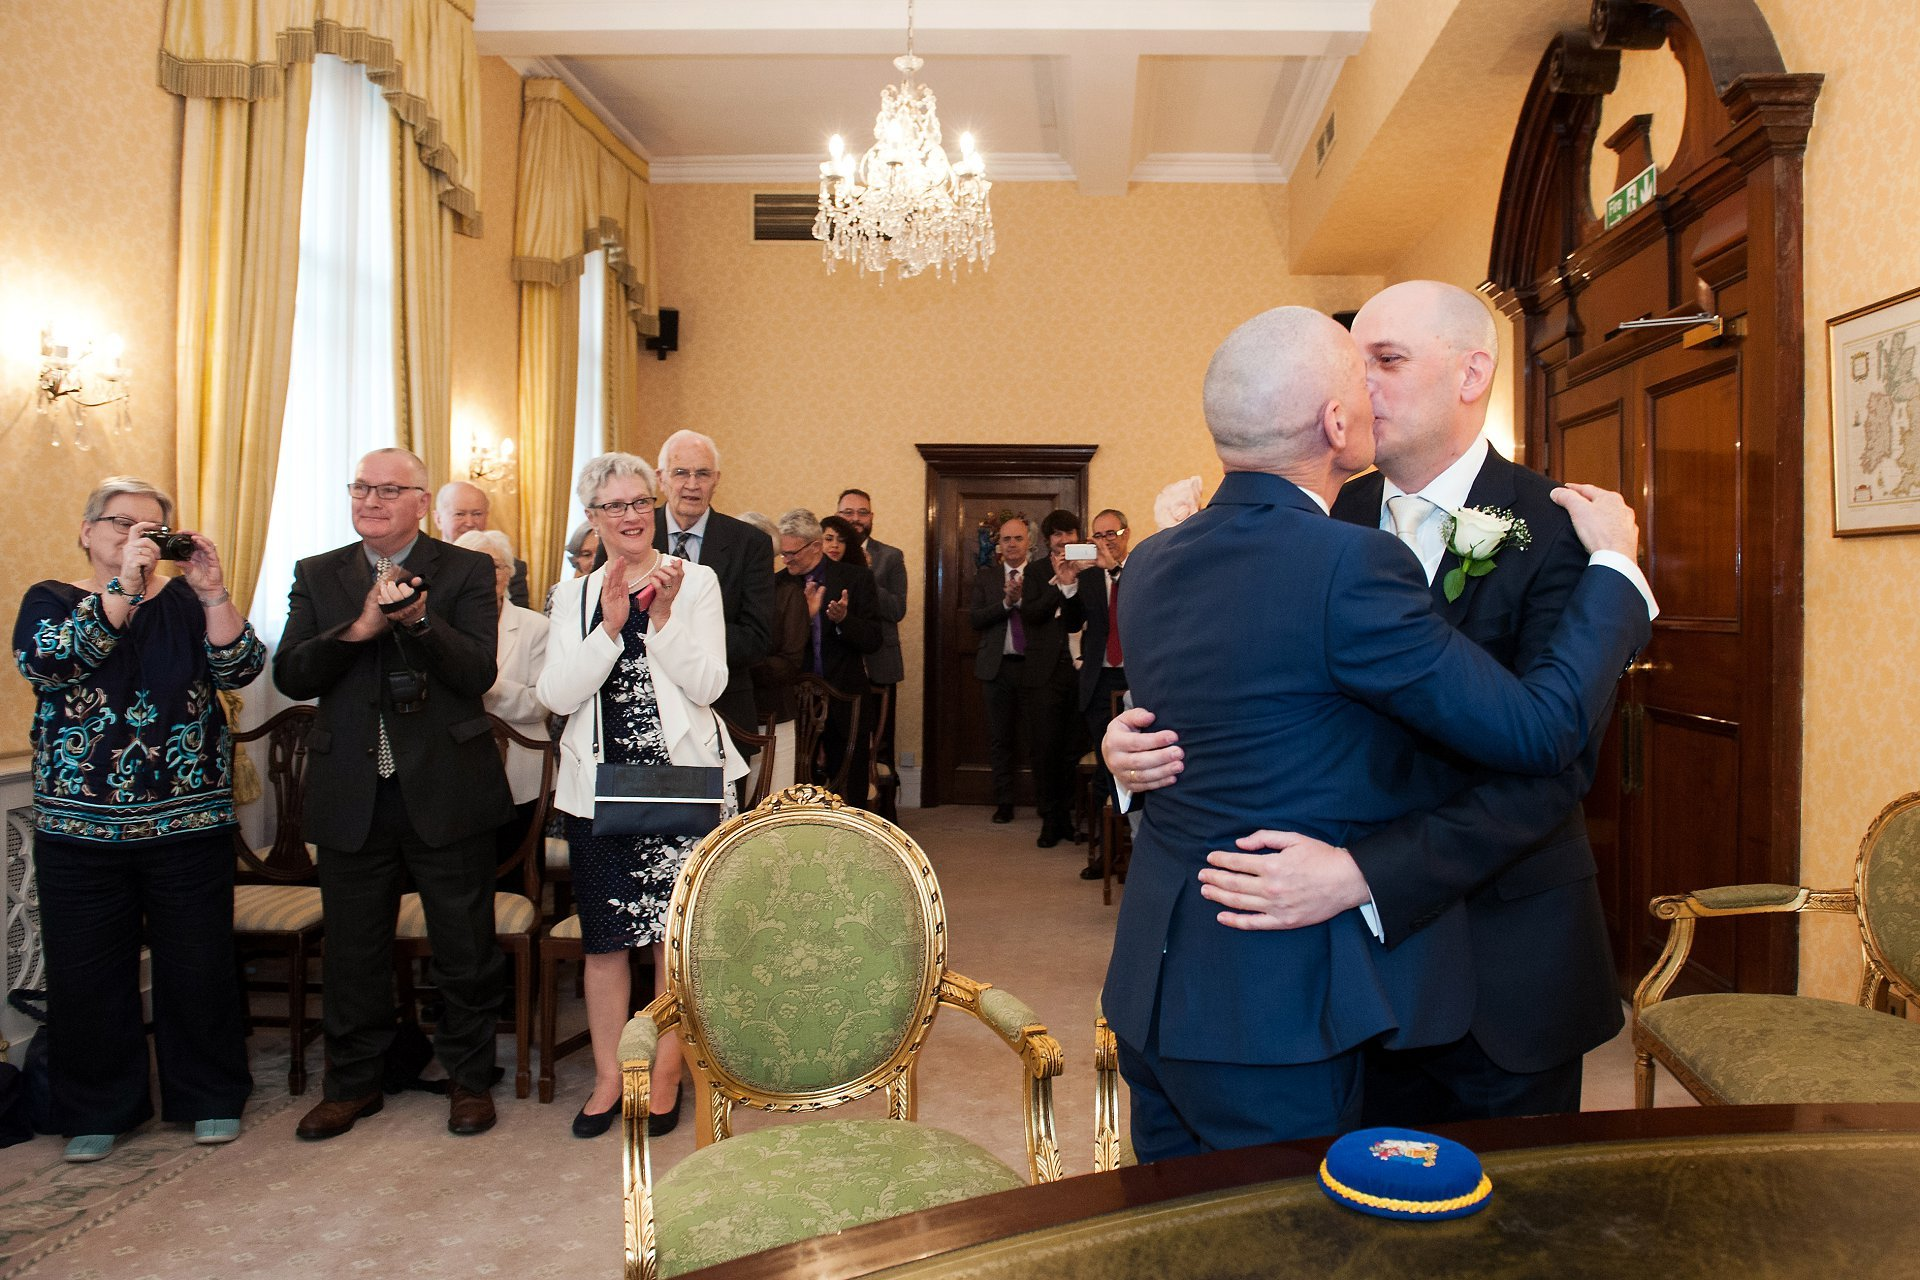 George and Jose kiss to celebrate their marriage in Chelsea Register Office